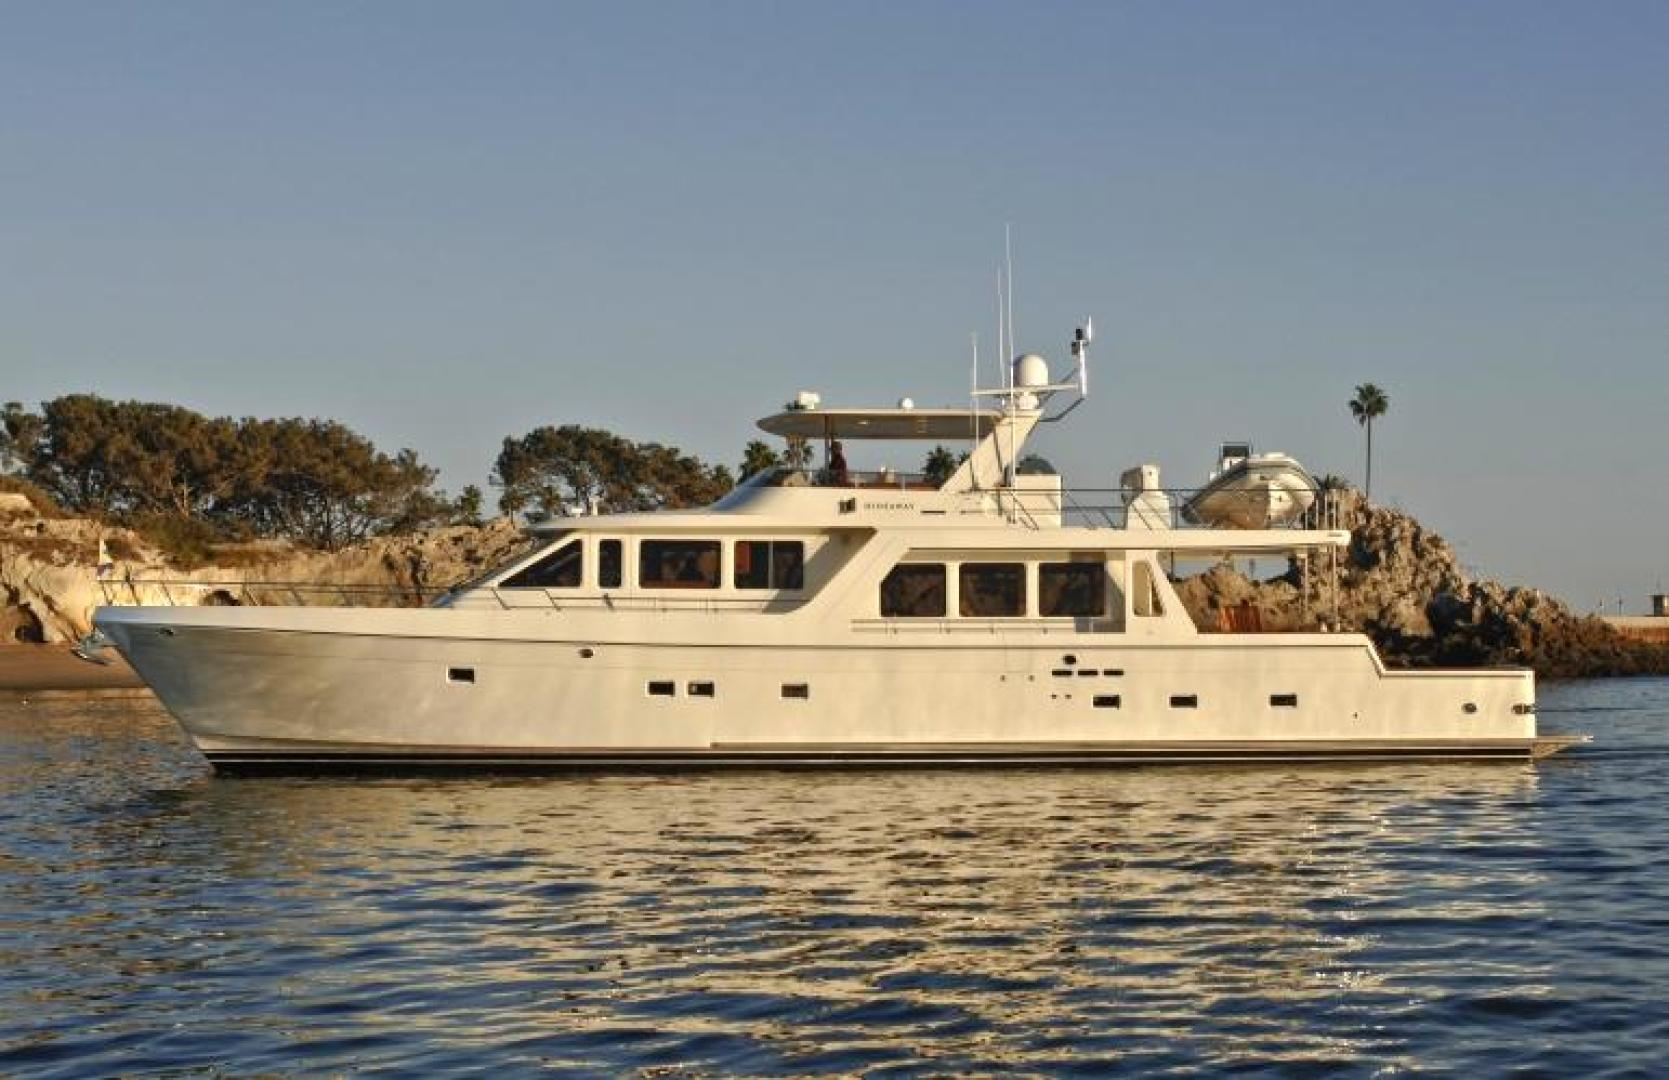 2021 Offshore Yachts 80' 76/80 Motoryacht